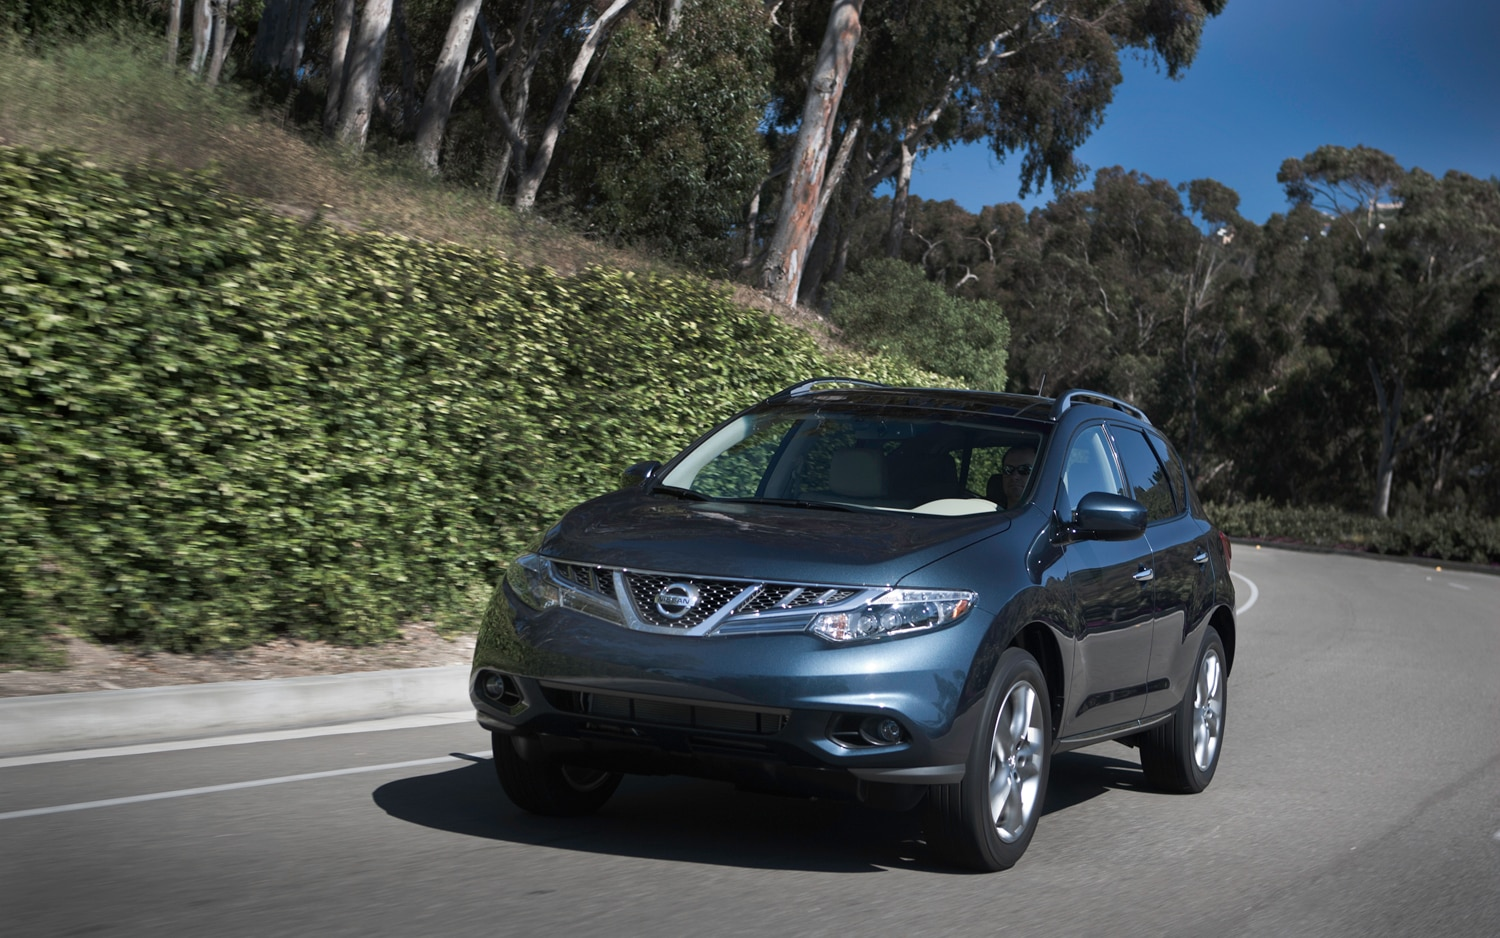 2011 Nissan Murano SL AWD Front Left Side View2